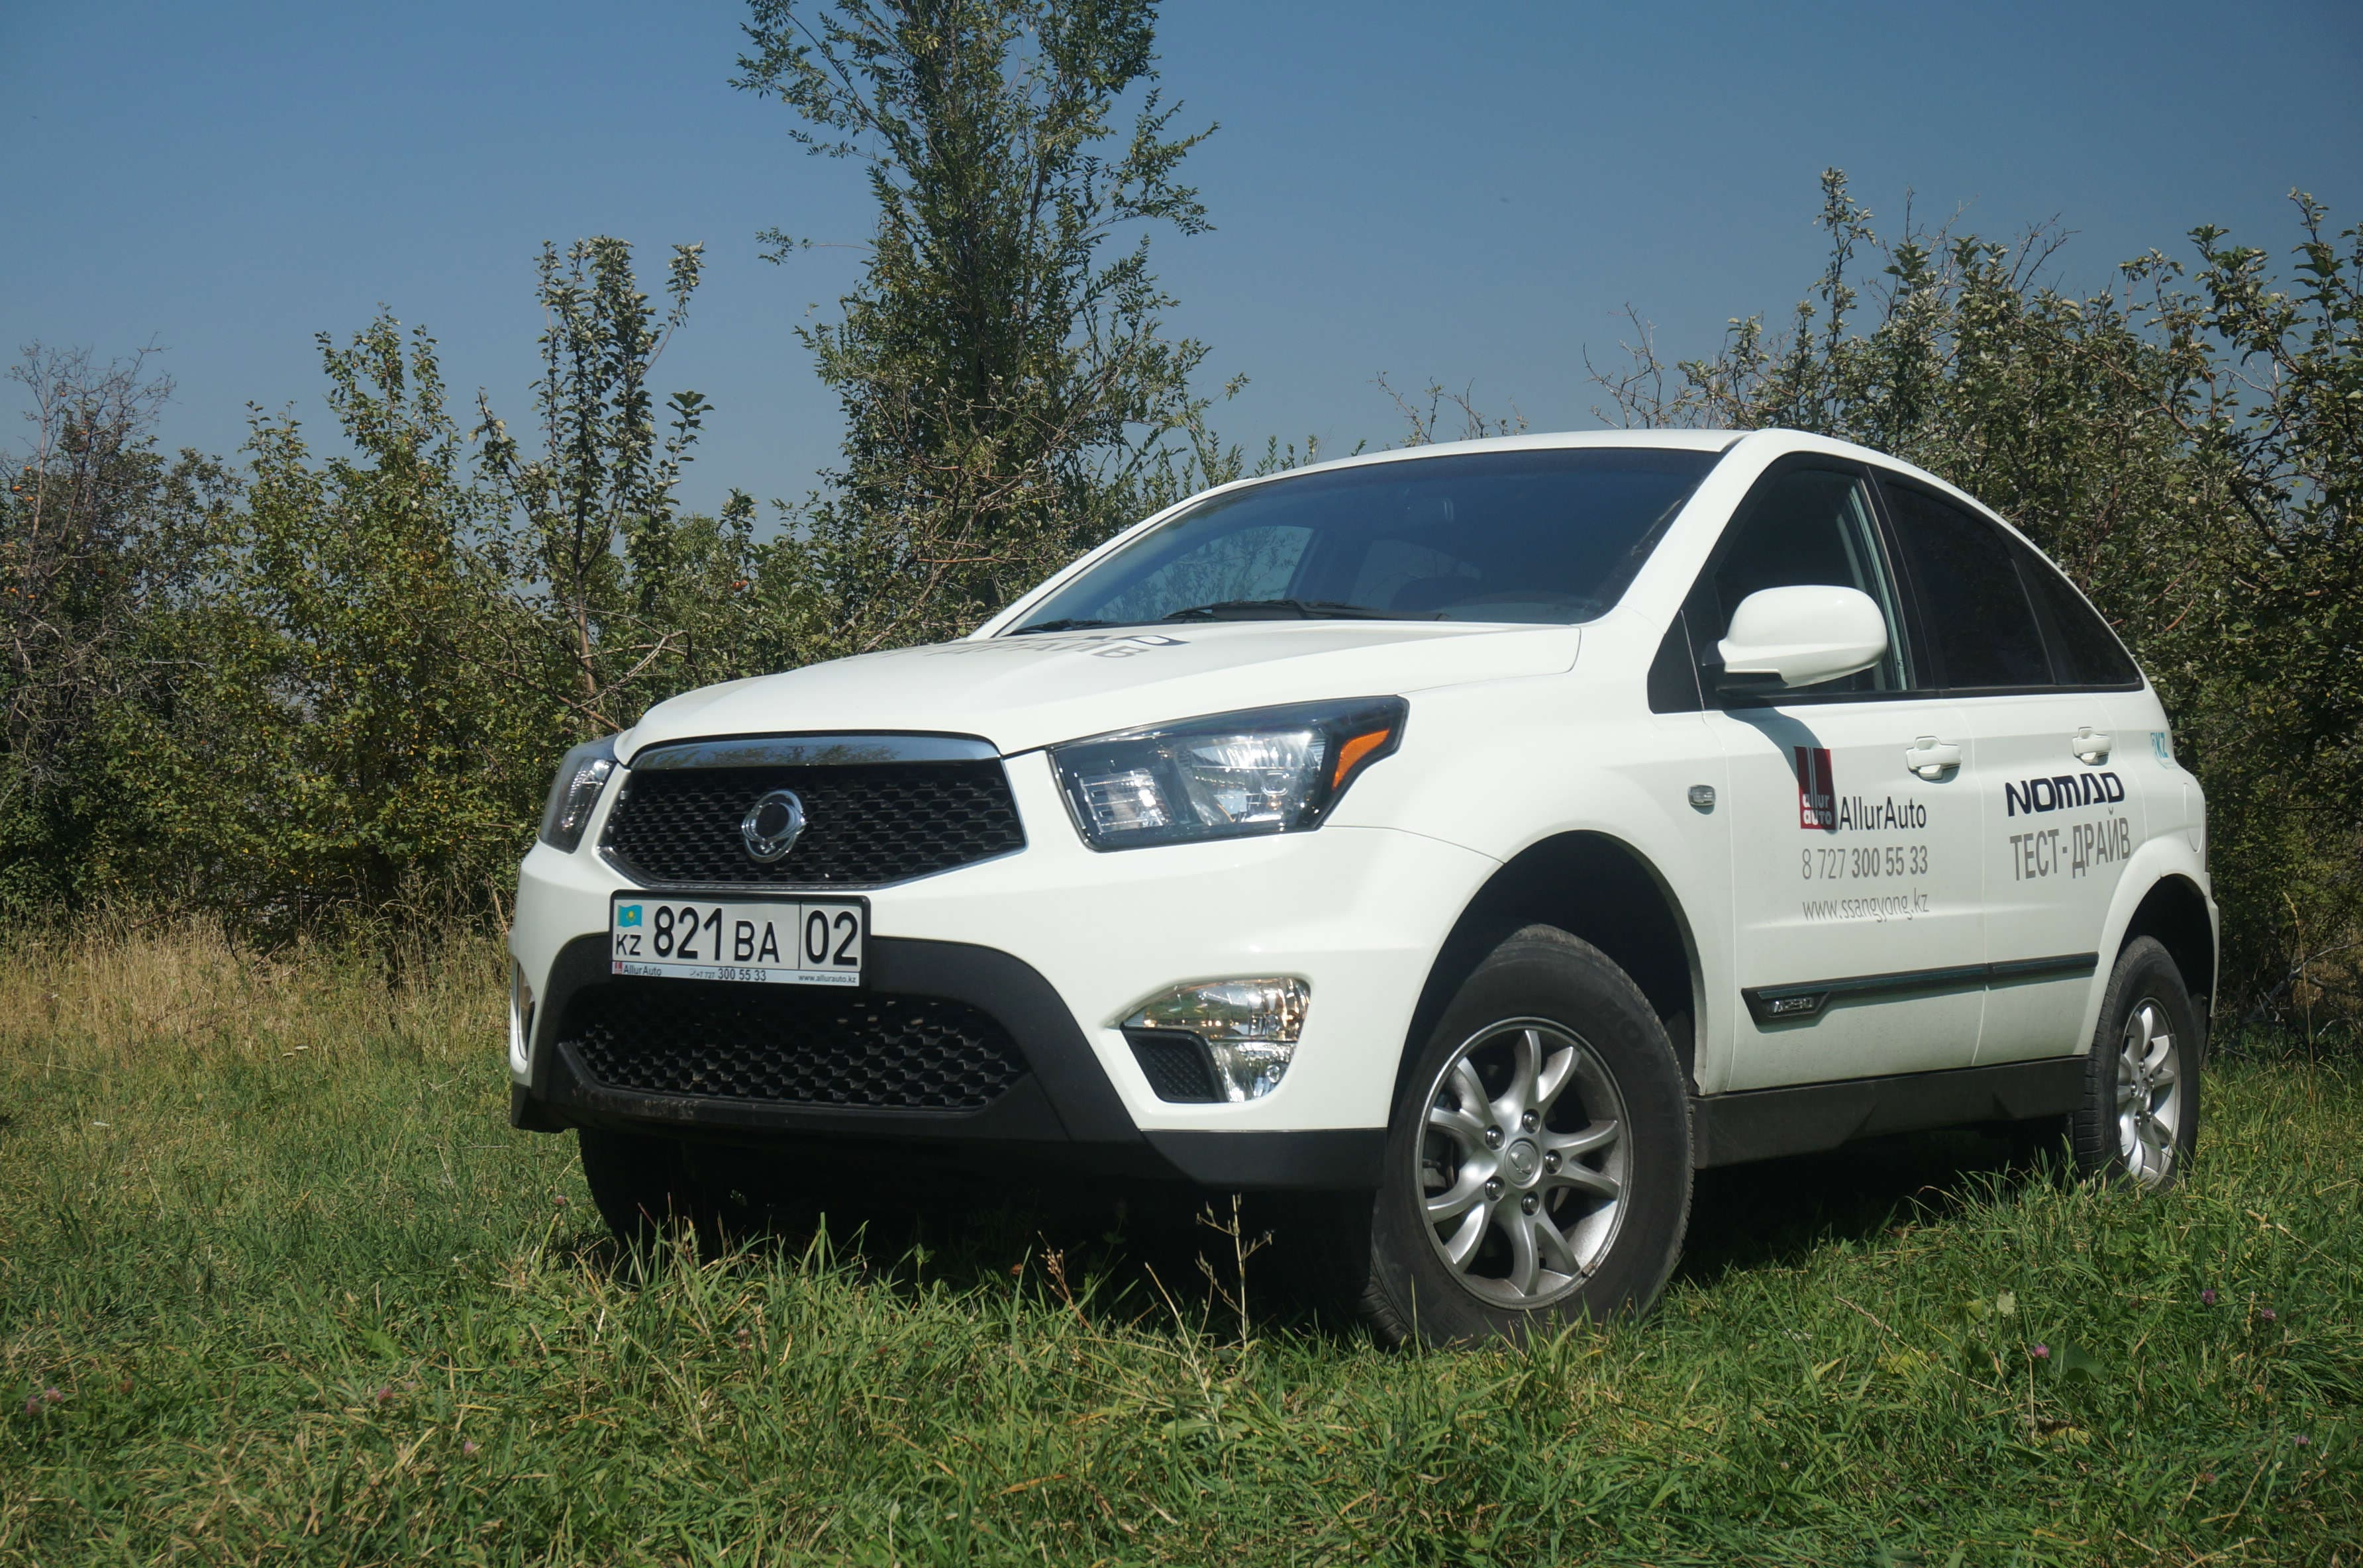 Ssang Yong Nomad HQ wallpapers